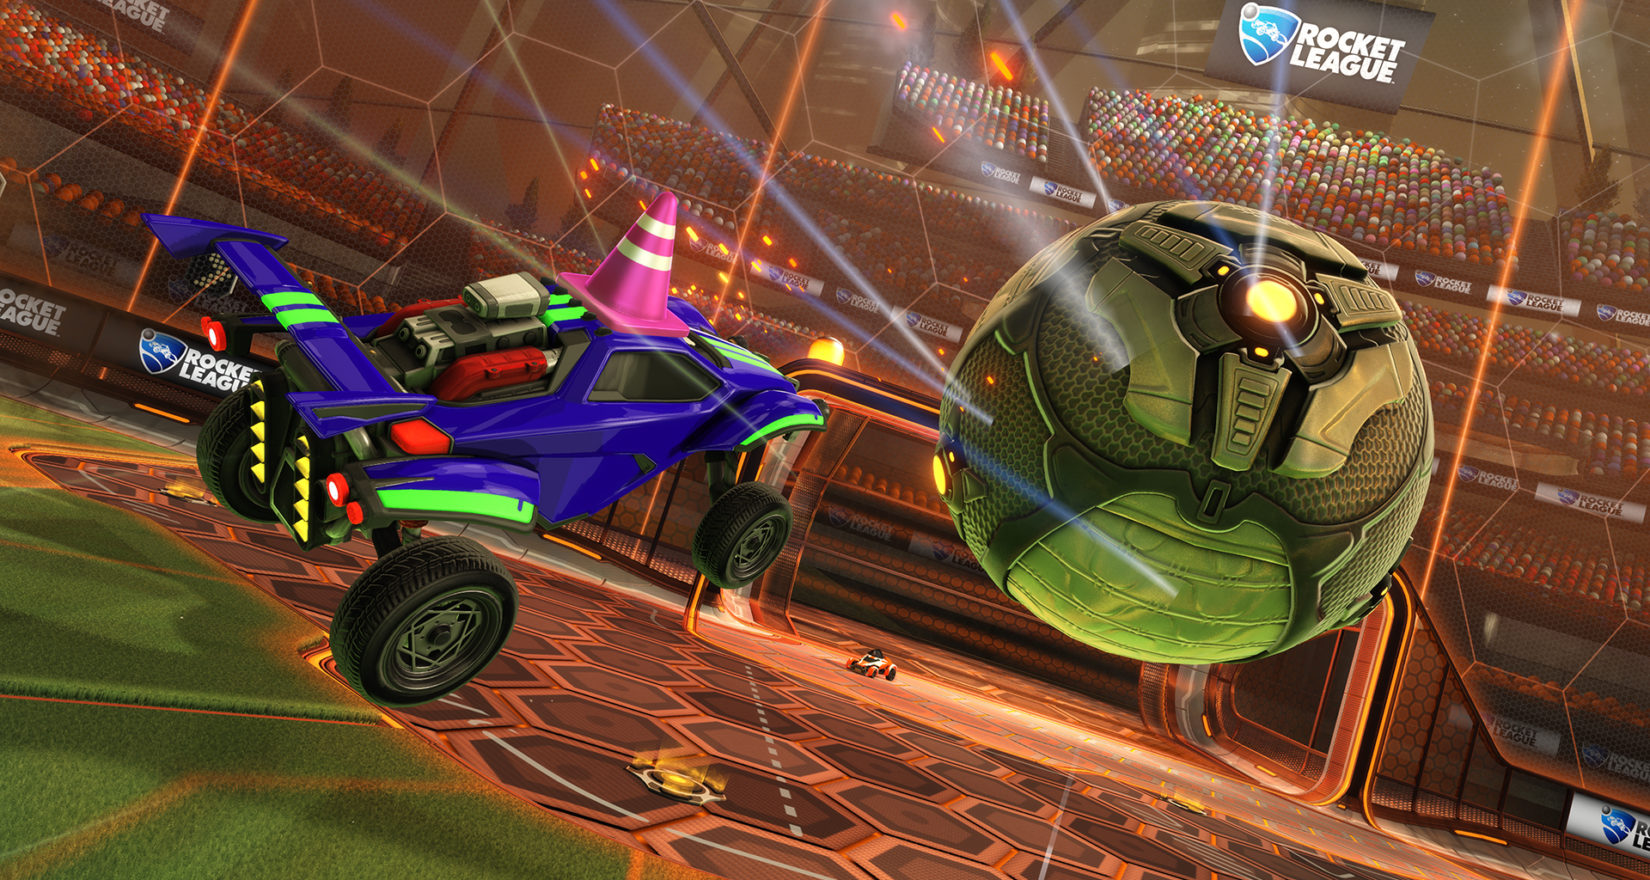 Trade off unwanted 'Rocket League' gear for hats and profit